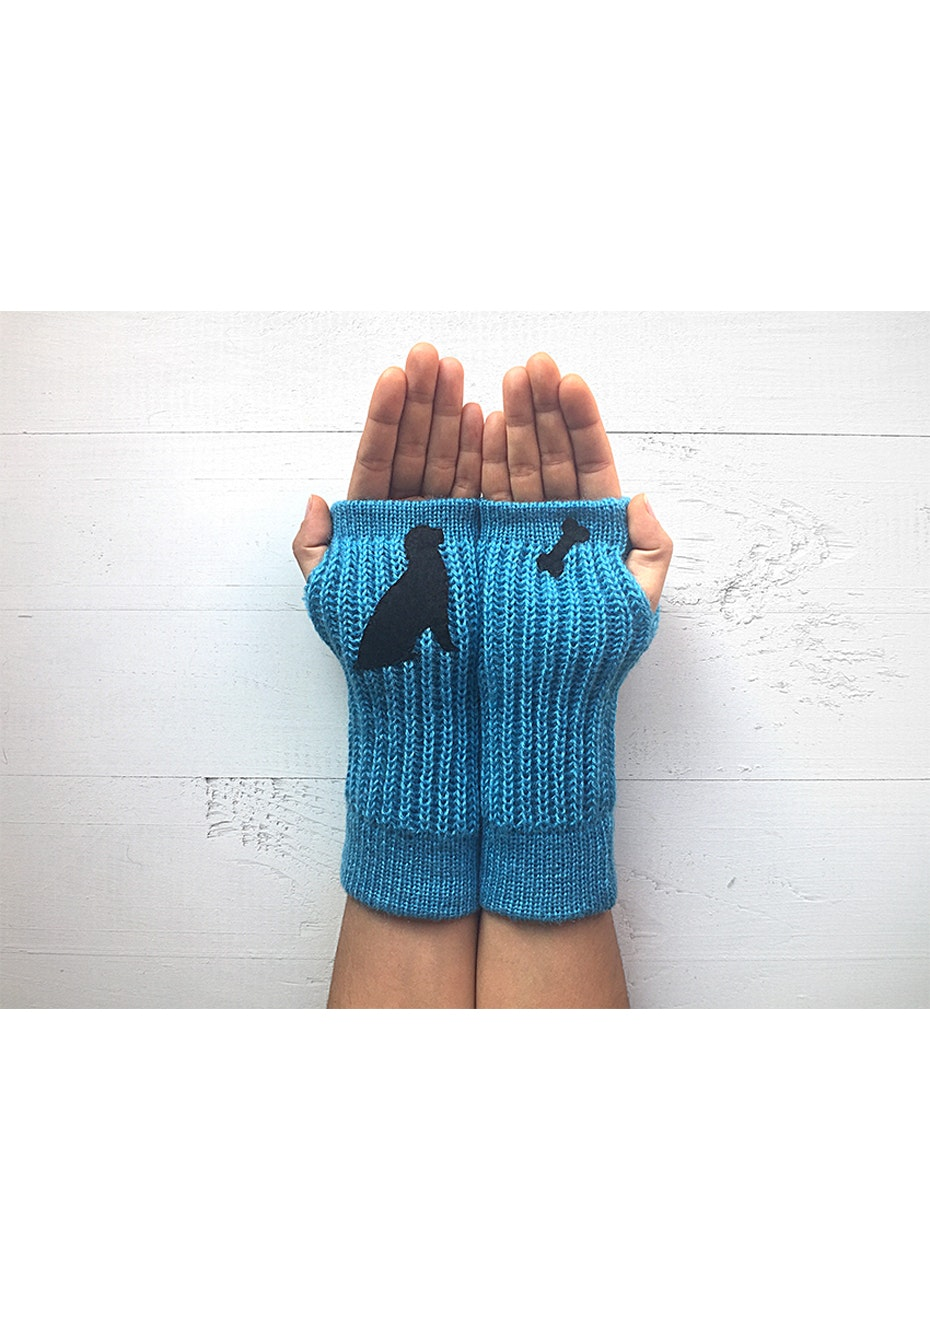 Dog & Bone Armwarmers - Blue/Black